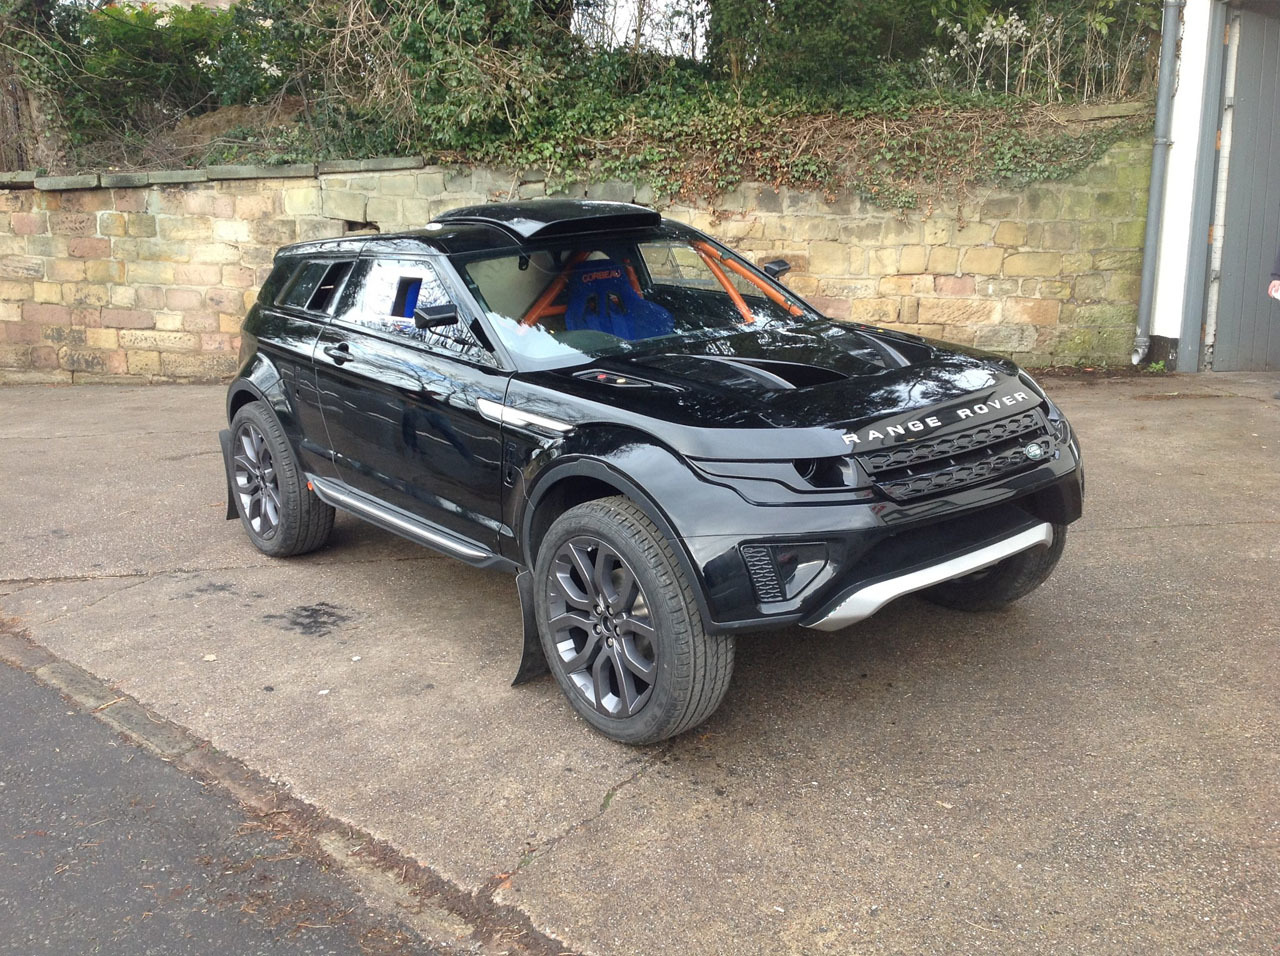 evoque milner lrm 1 rang rover supercharged v8 550hp pics. Black Bedroom Furniture Sets. Home Design Ideas